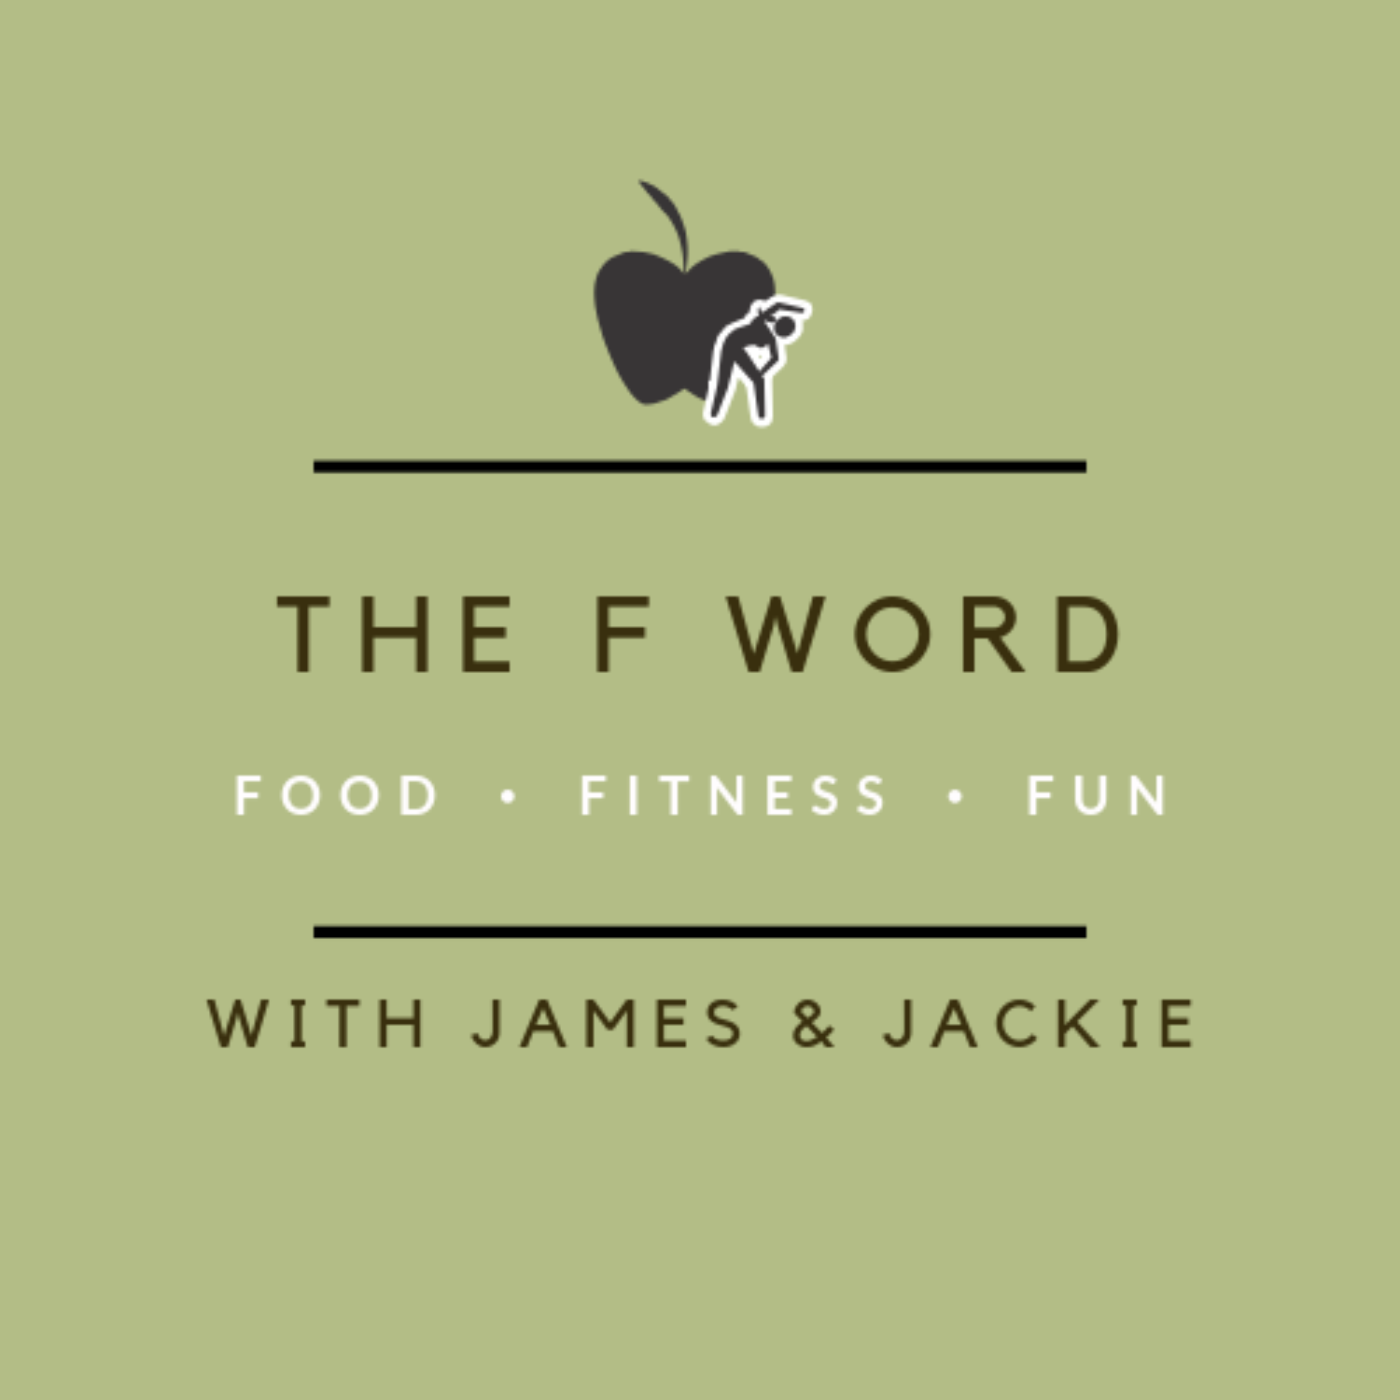 The F Word - James and Jackie